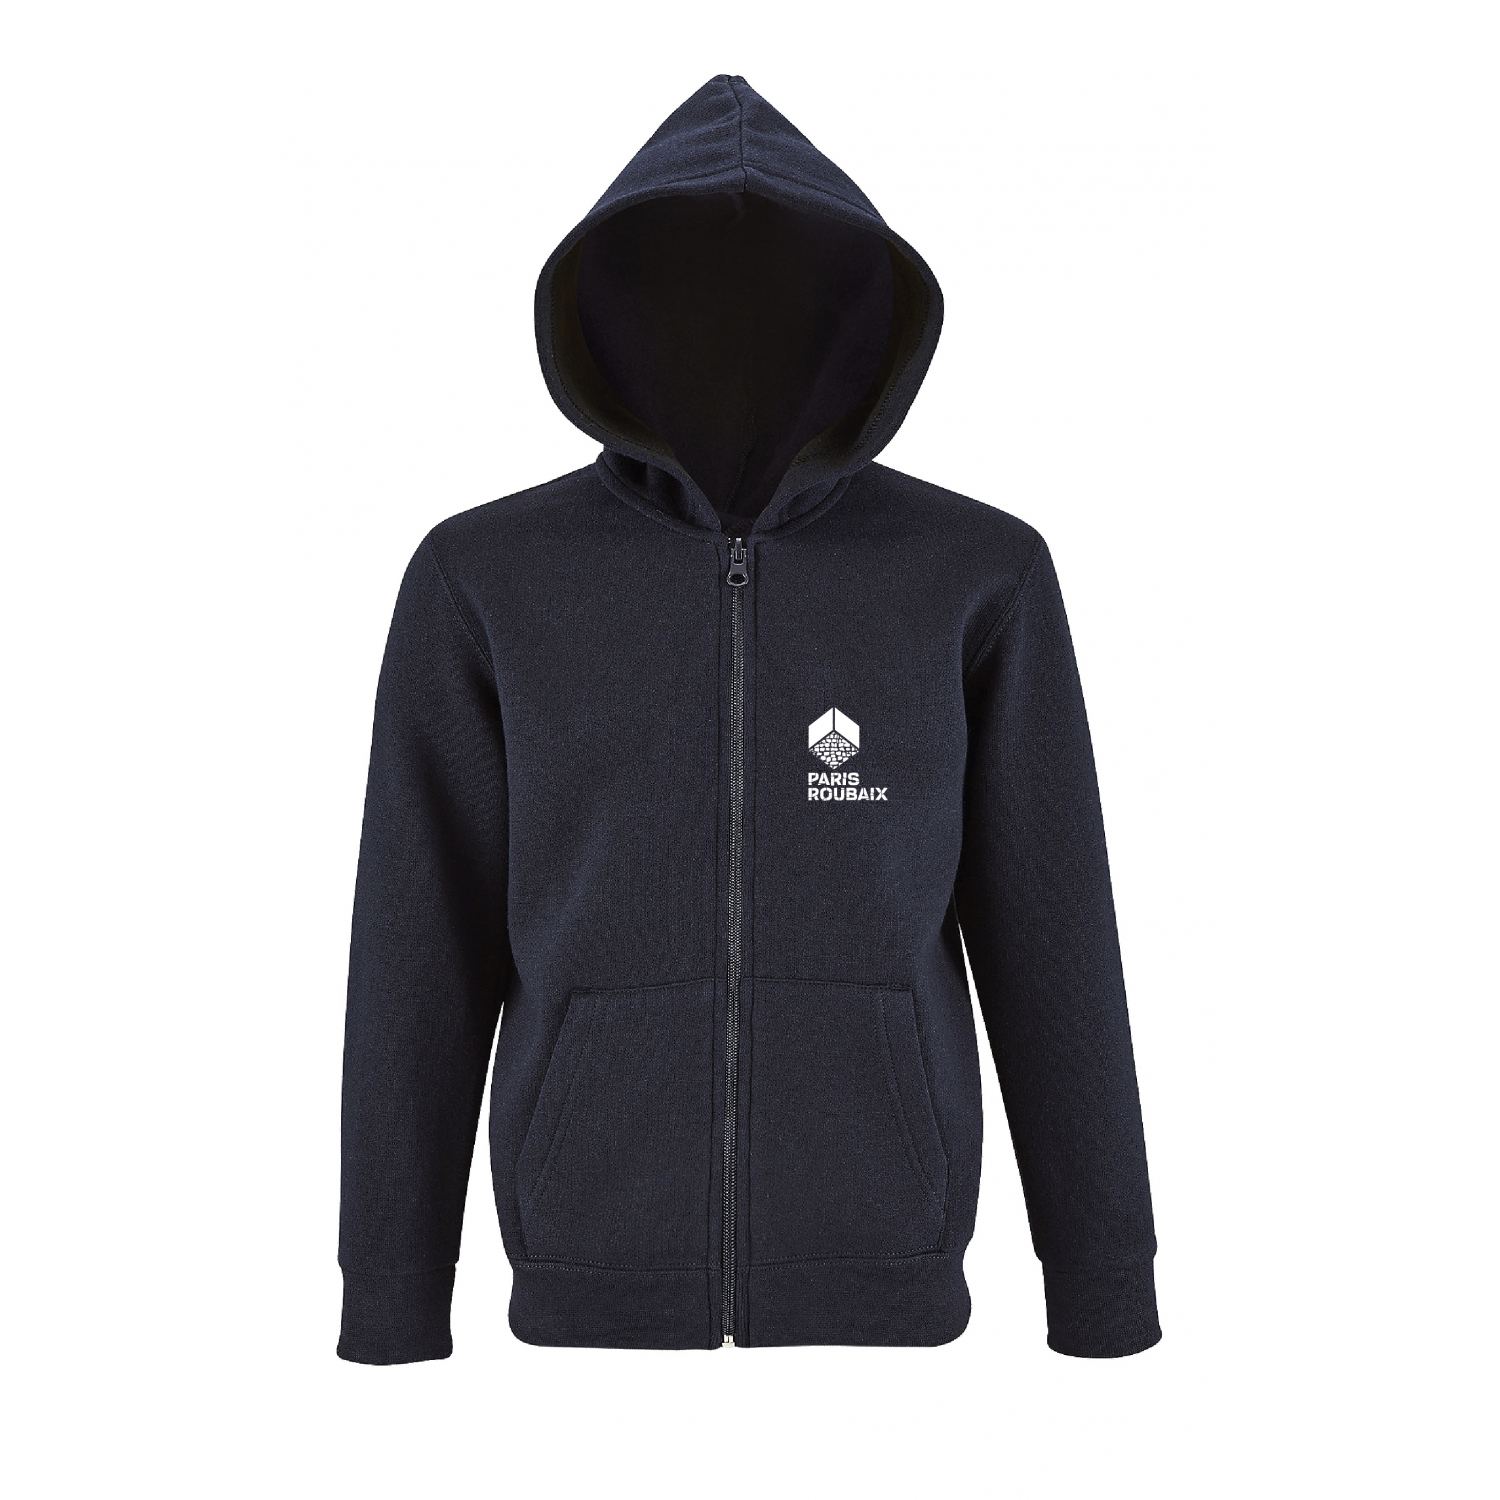 Sweat Capuche Paris Roubaix Grégario Enfant